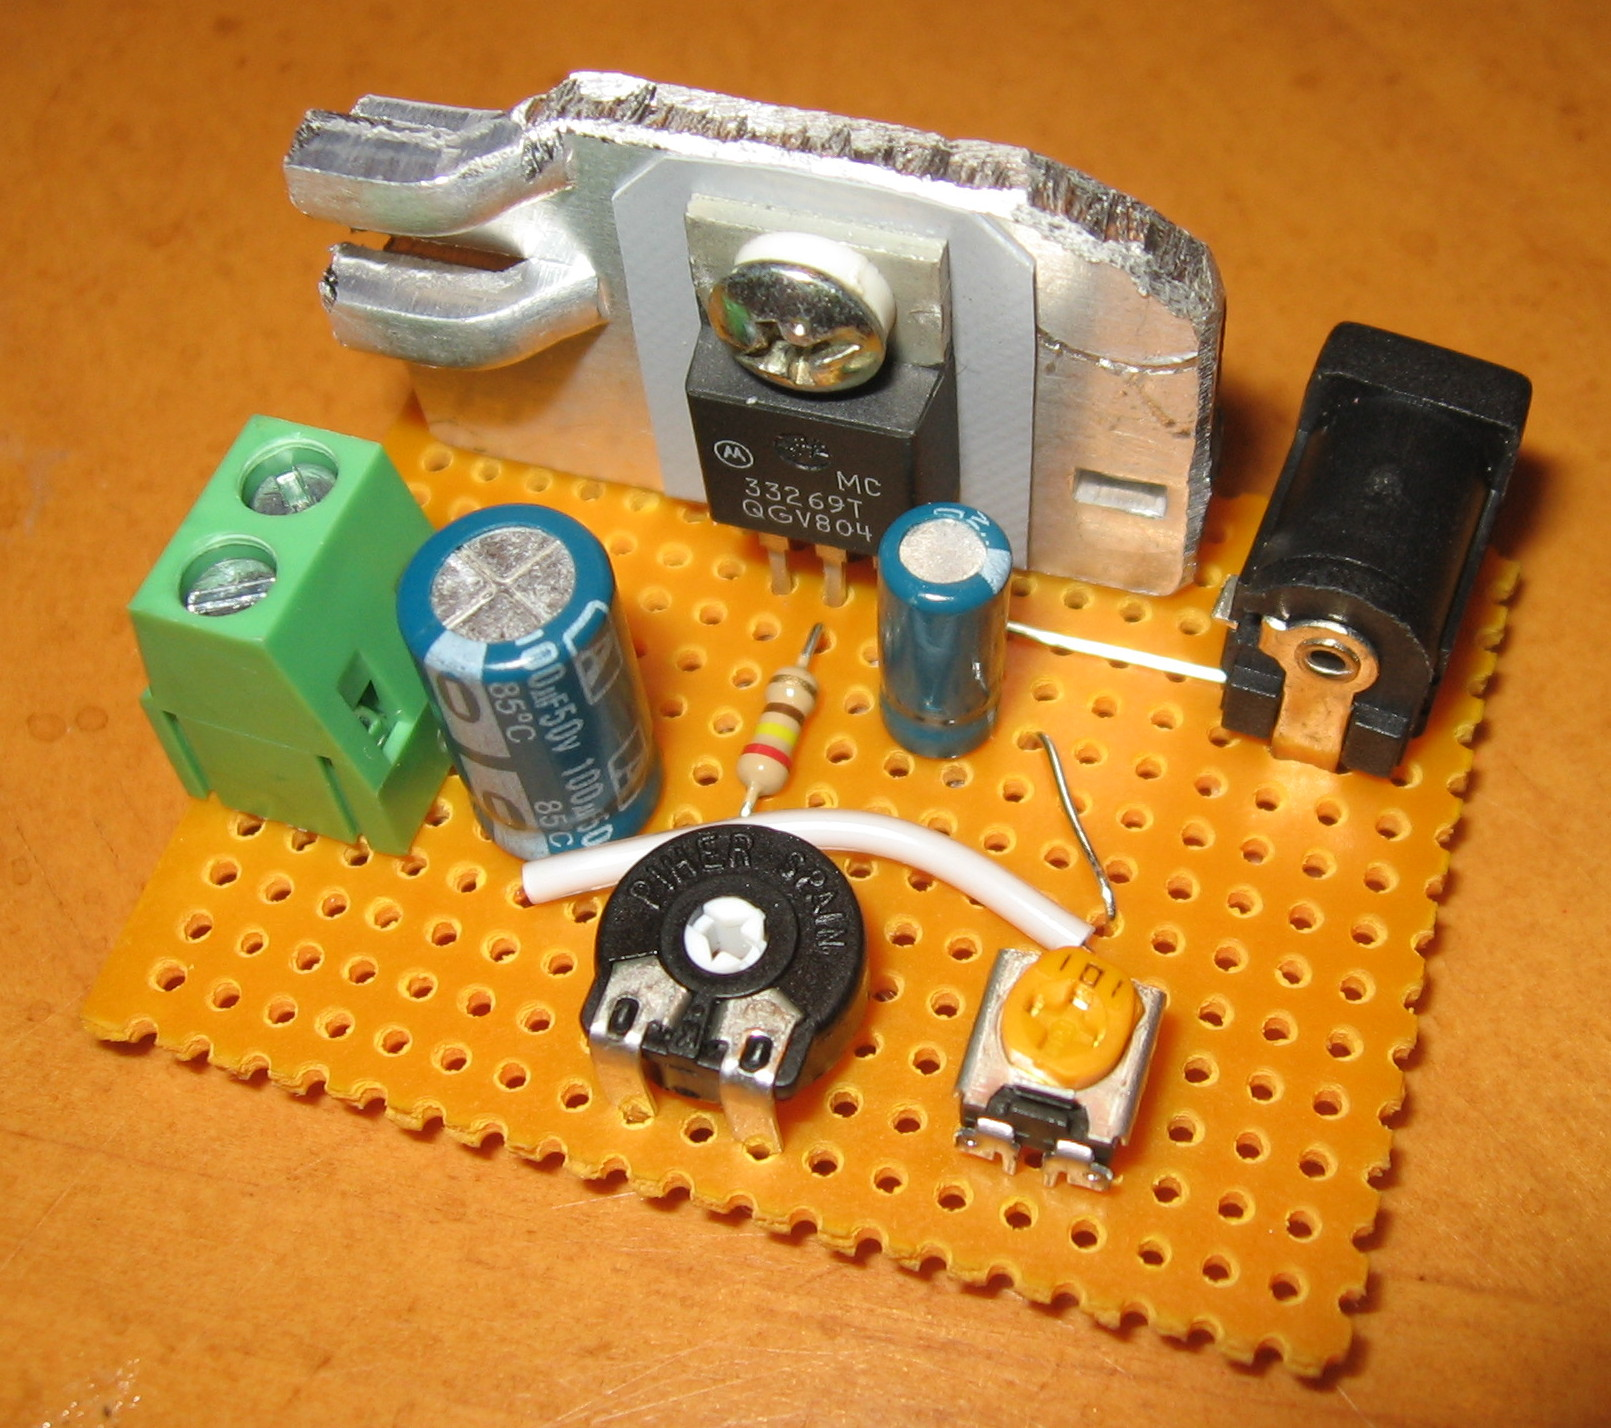 Improved Simple Adjustable DC Power Supply